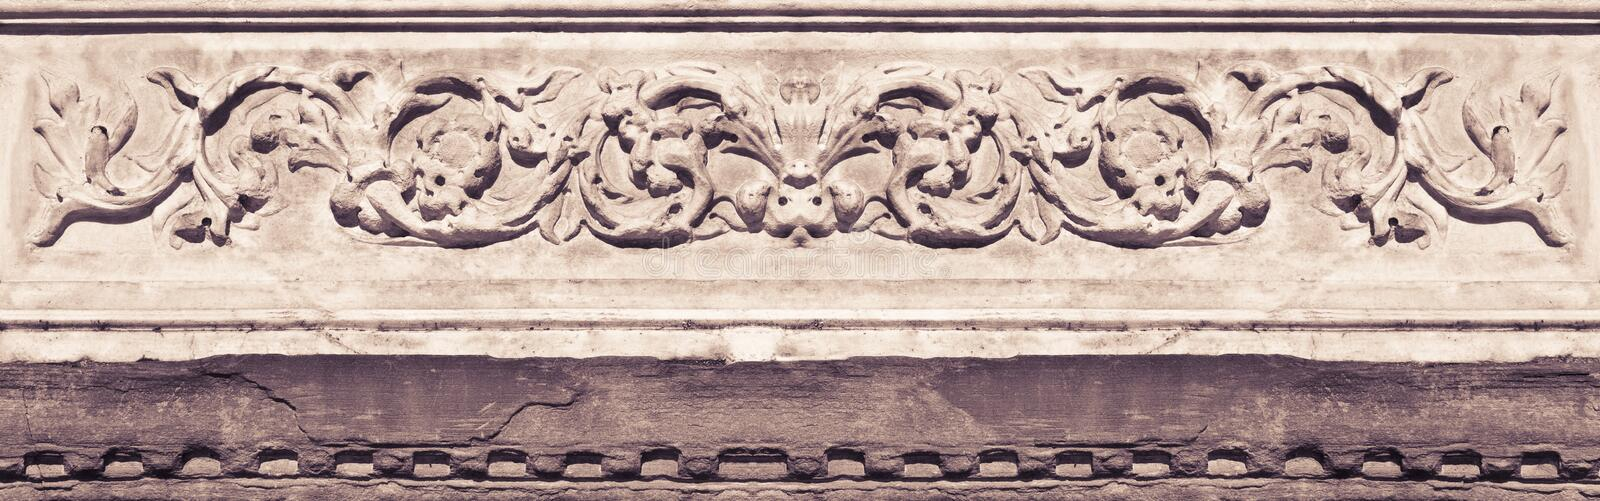 Detail of an old Italian molding stone eaves with foliage and pl royalty free stock photography